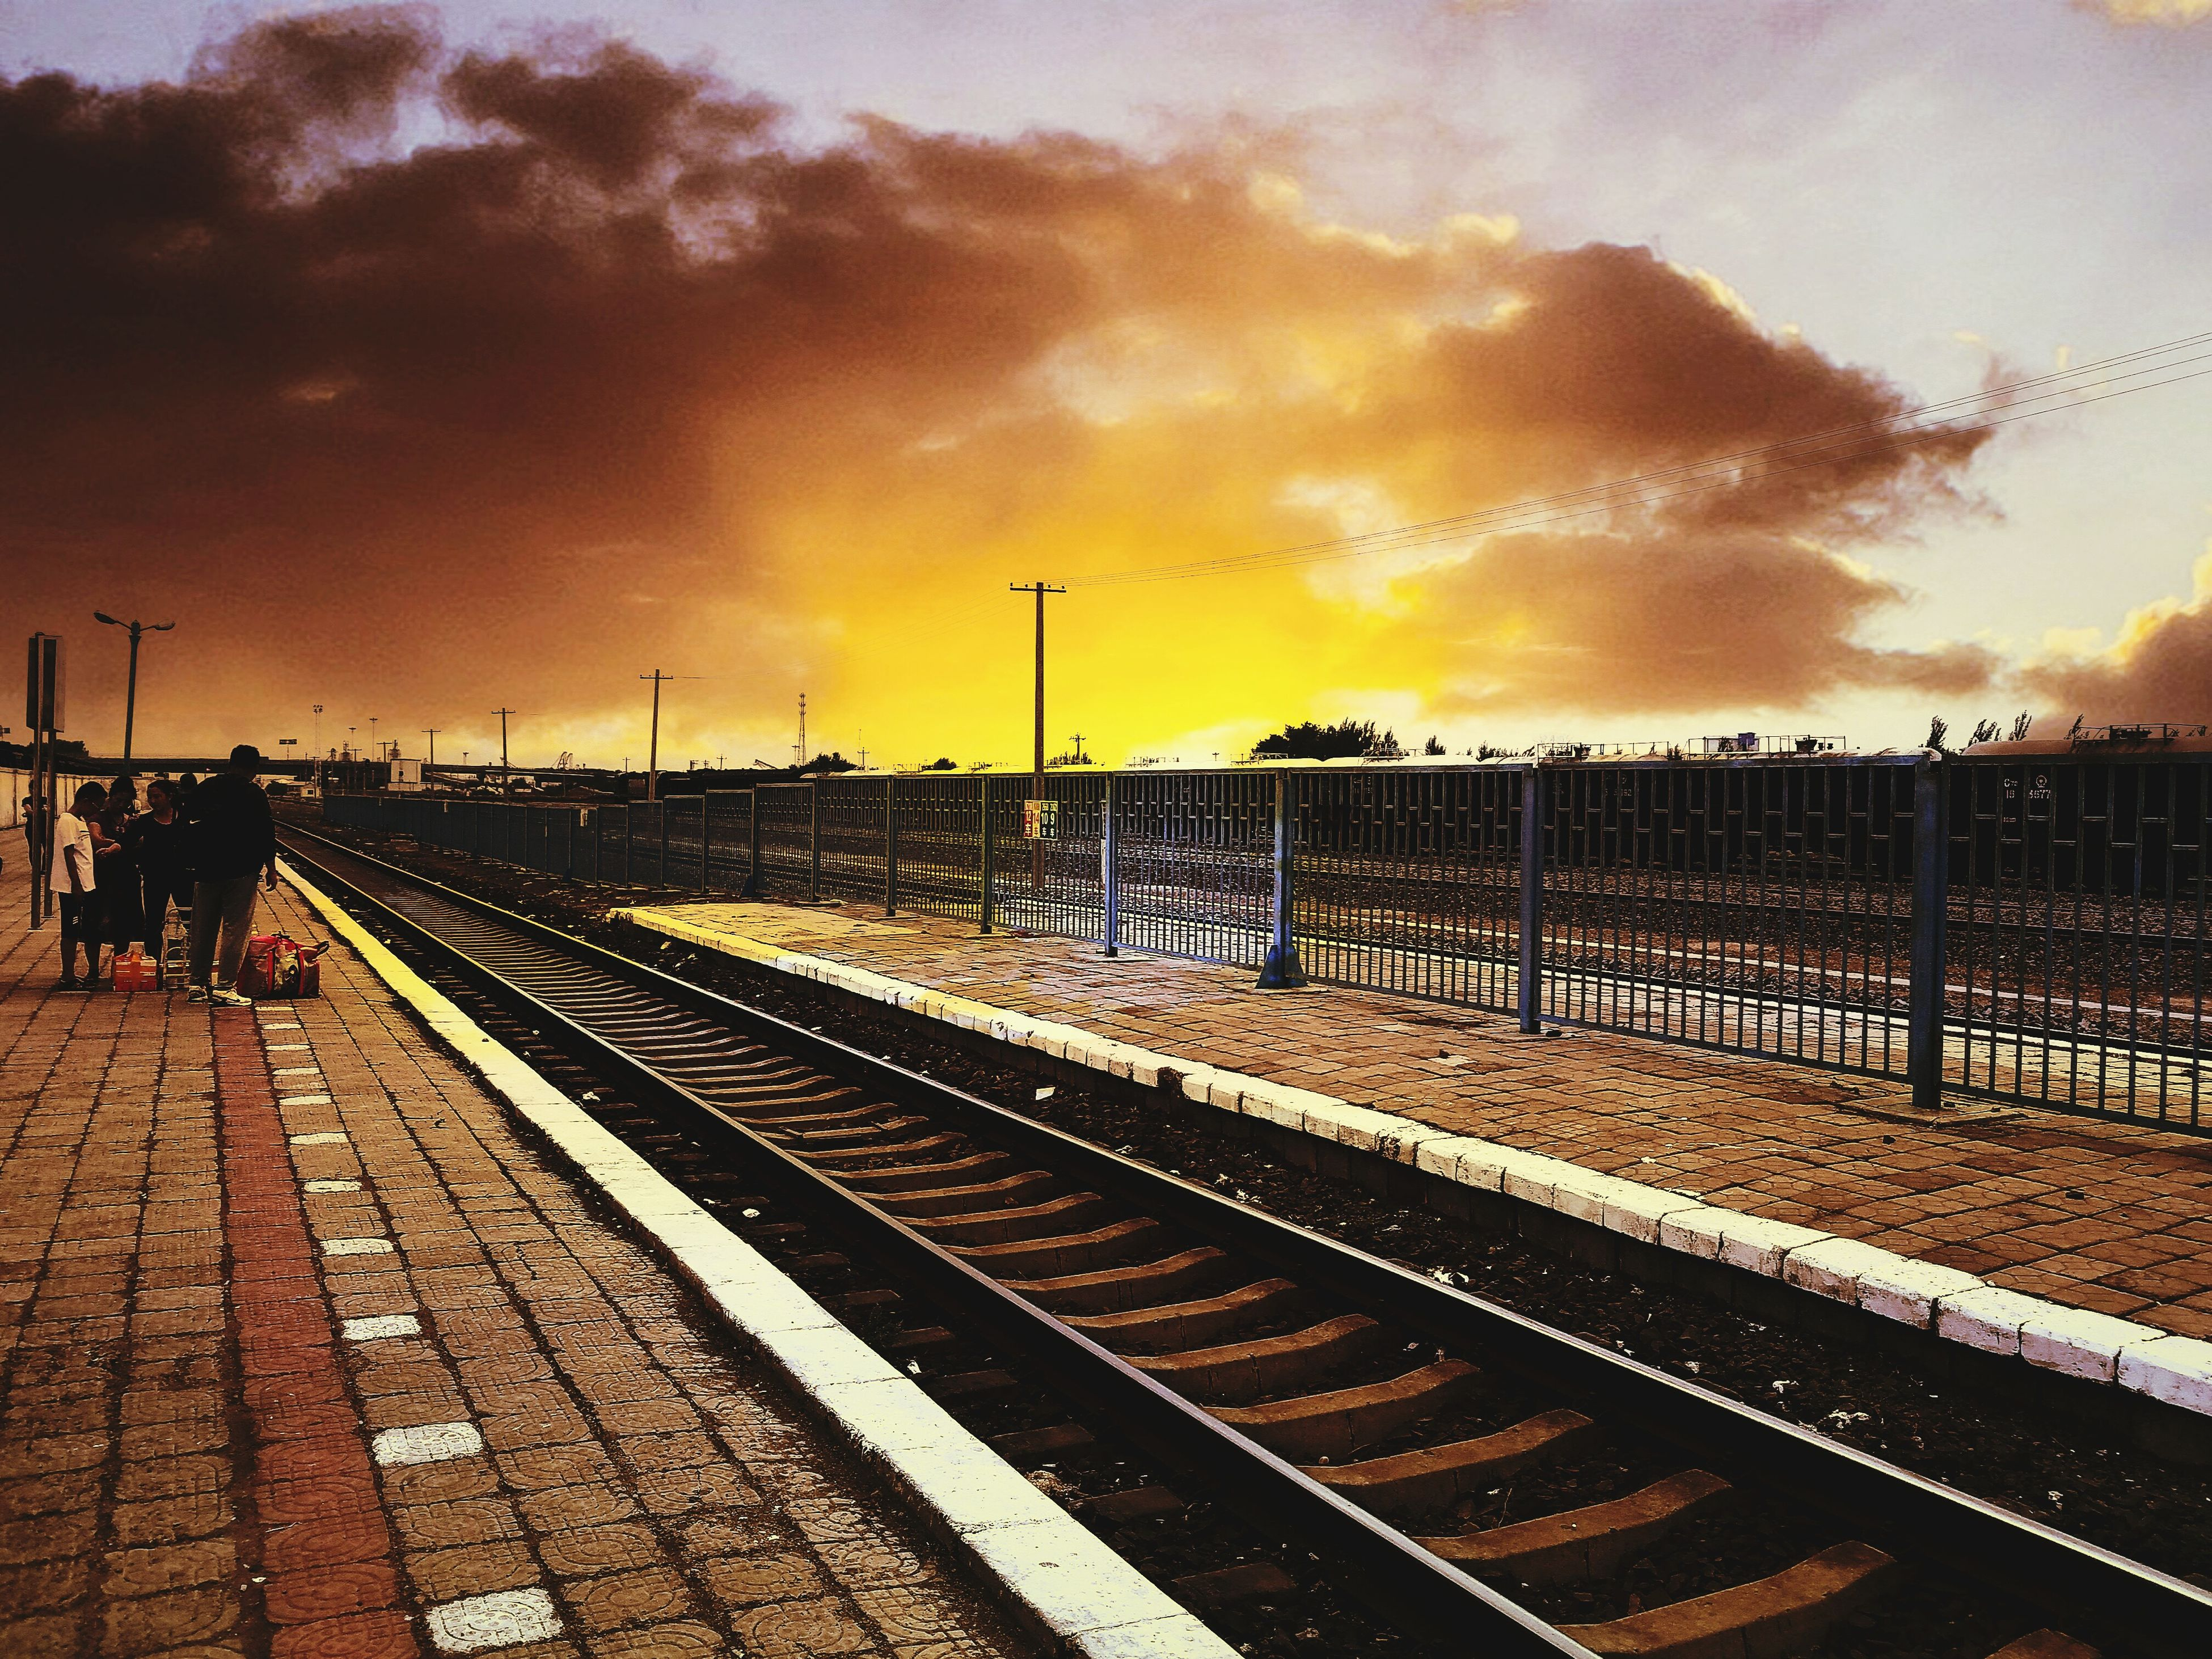 railroad track, transportation, rail transportation, sunset, sky, railroad station, cloud, cloud - sky, railroad station platform, storm cloud, diminishing perspective, long, railway track, outdoors, bright, straight, scenics, public transport, journey, the way forward, tranquil scene